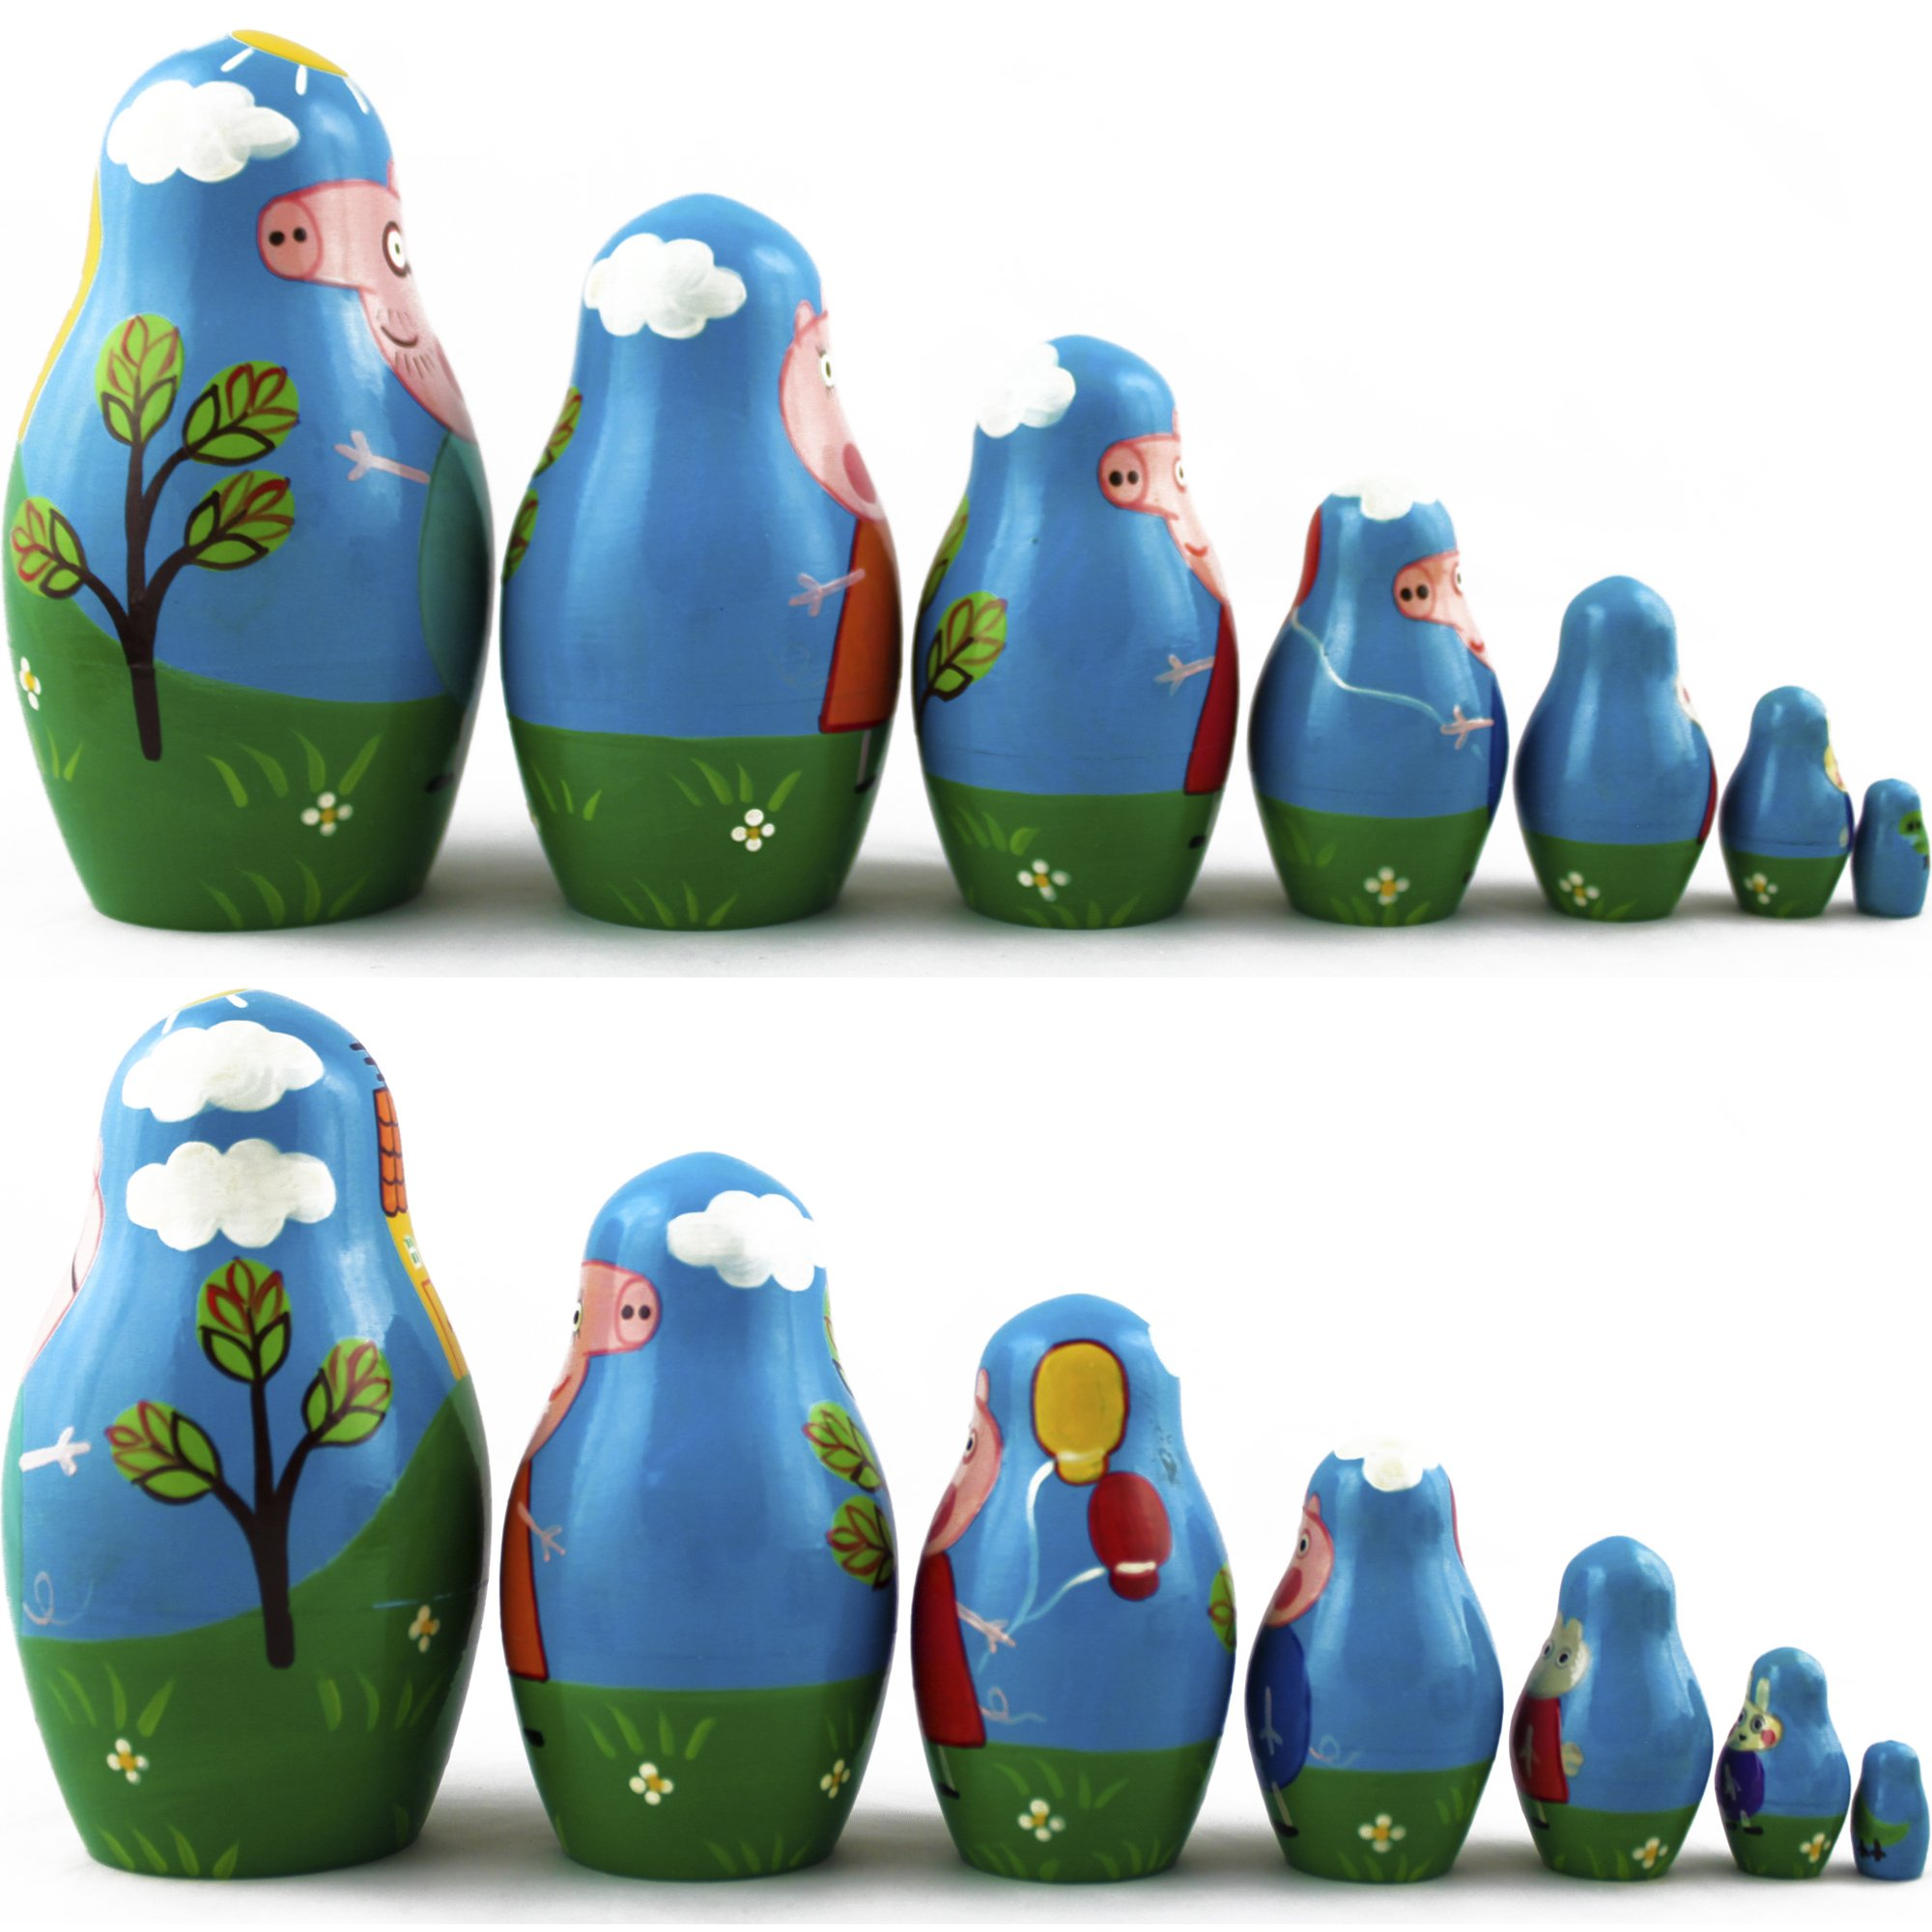 Peppa Pig Nesting Stacking Dolls Matryoshka Toys Set 7 dolls 5.3 in by MATRYOSHKA&HANDICRAFT (Image #2)